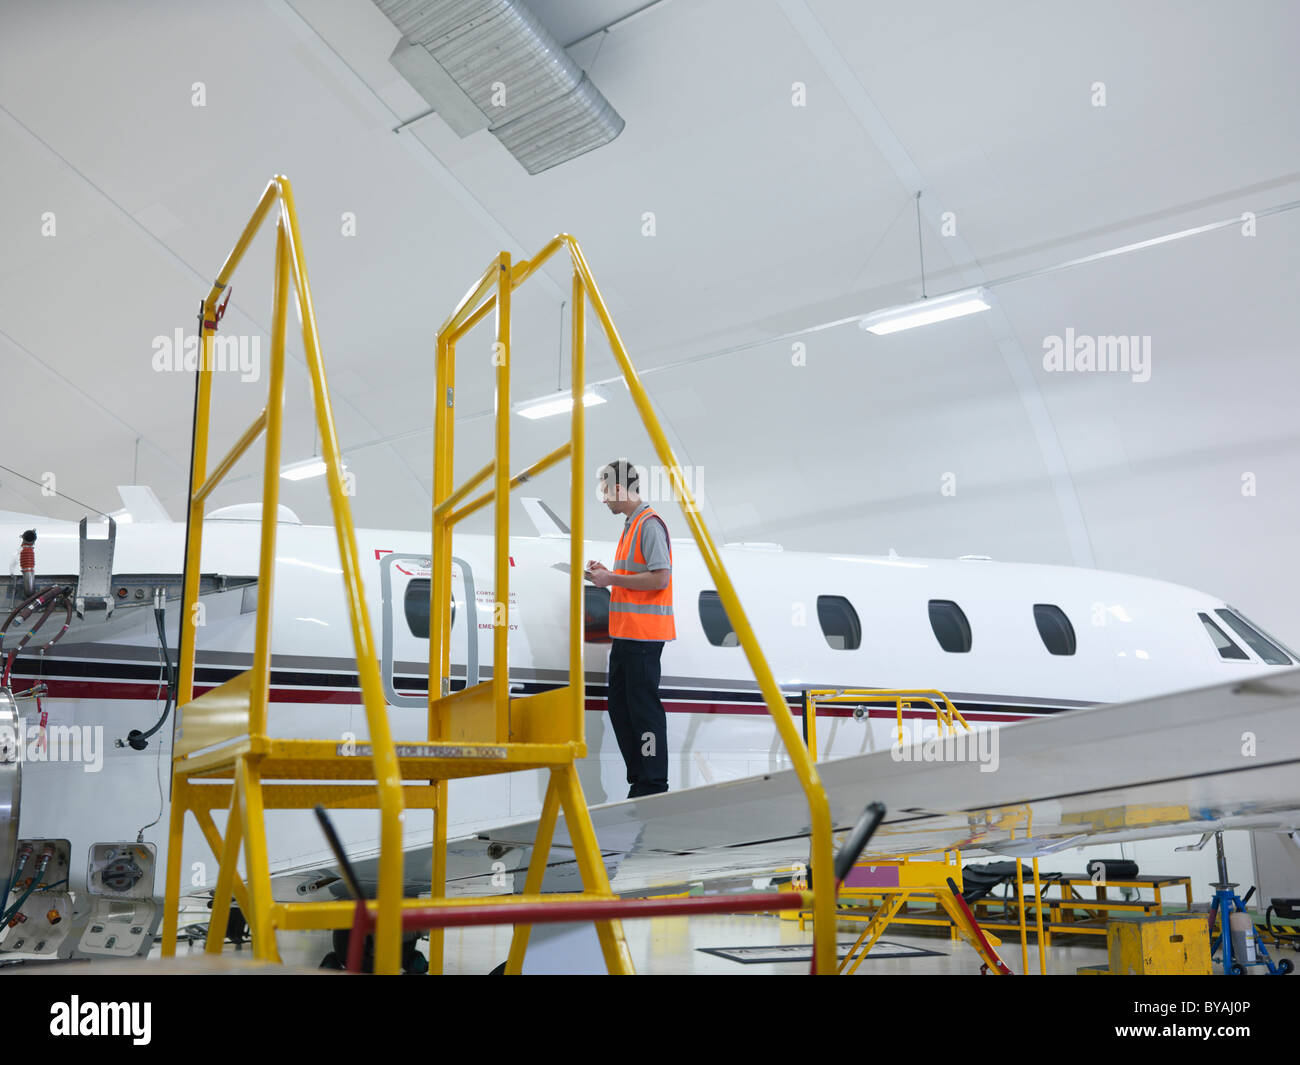 Engineer inspects jet aircraft - Stock Image